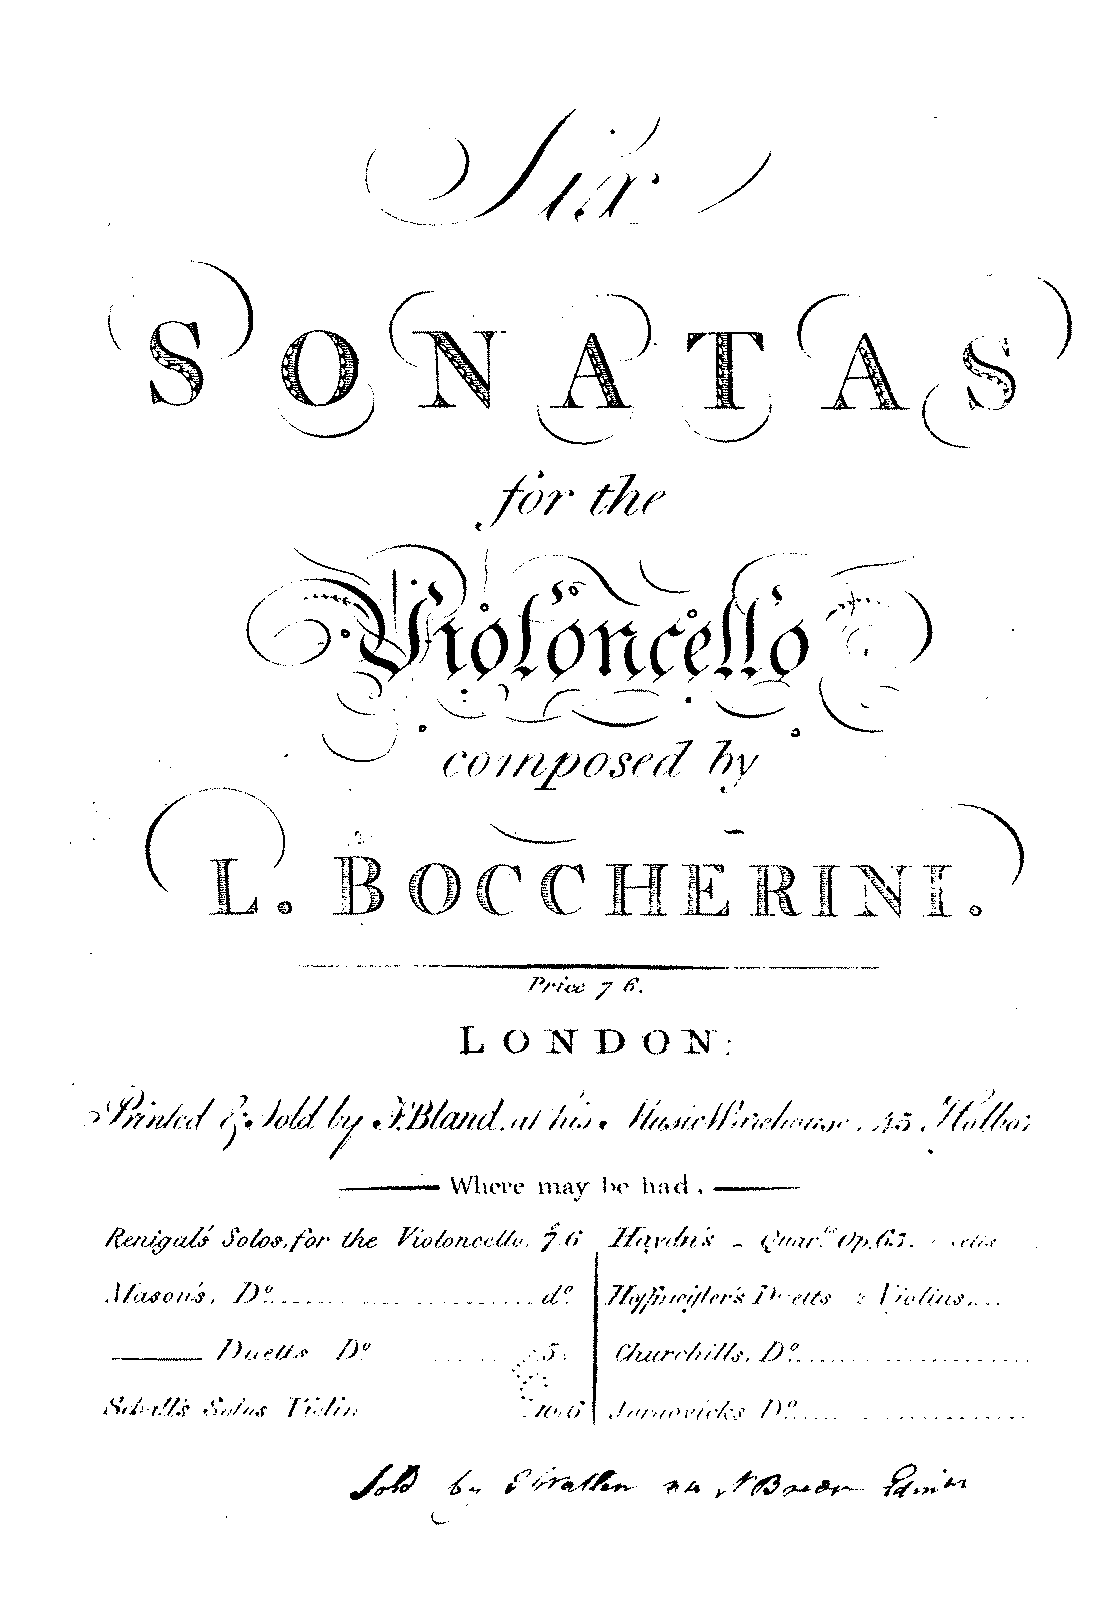 PMLP78527-Boccherini - Cello Sonata No2 in C Major (London).pdf